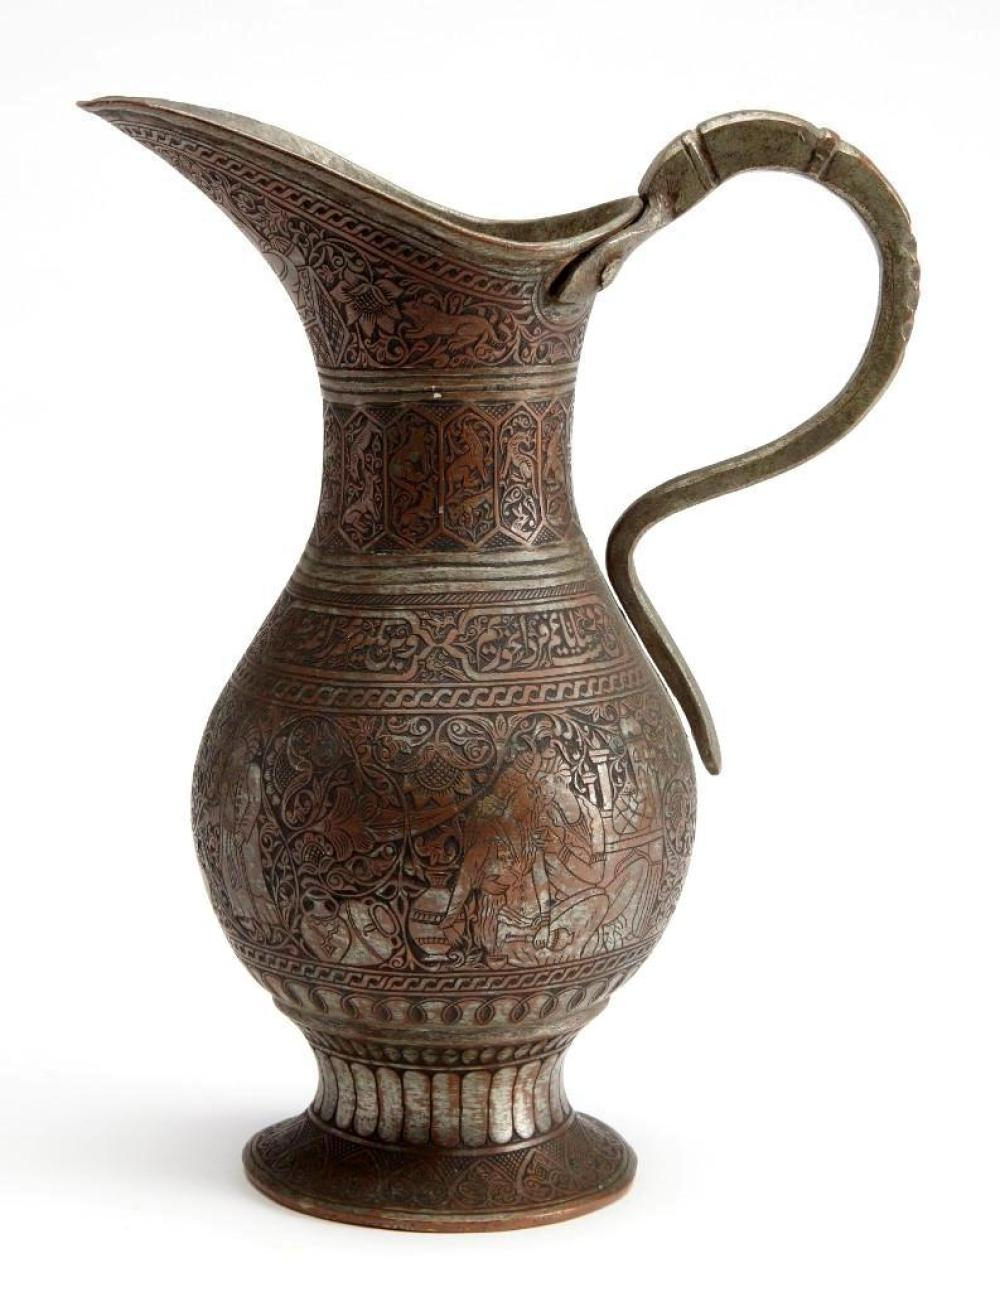 Islamic Engraved Pitcher